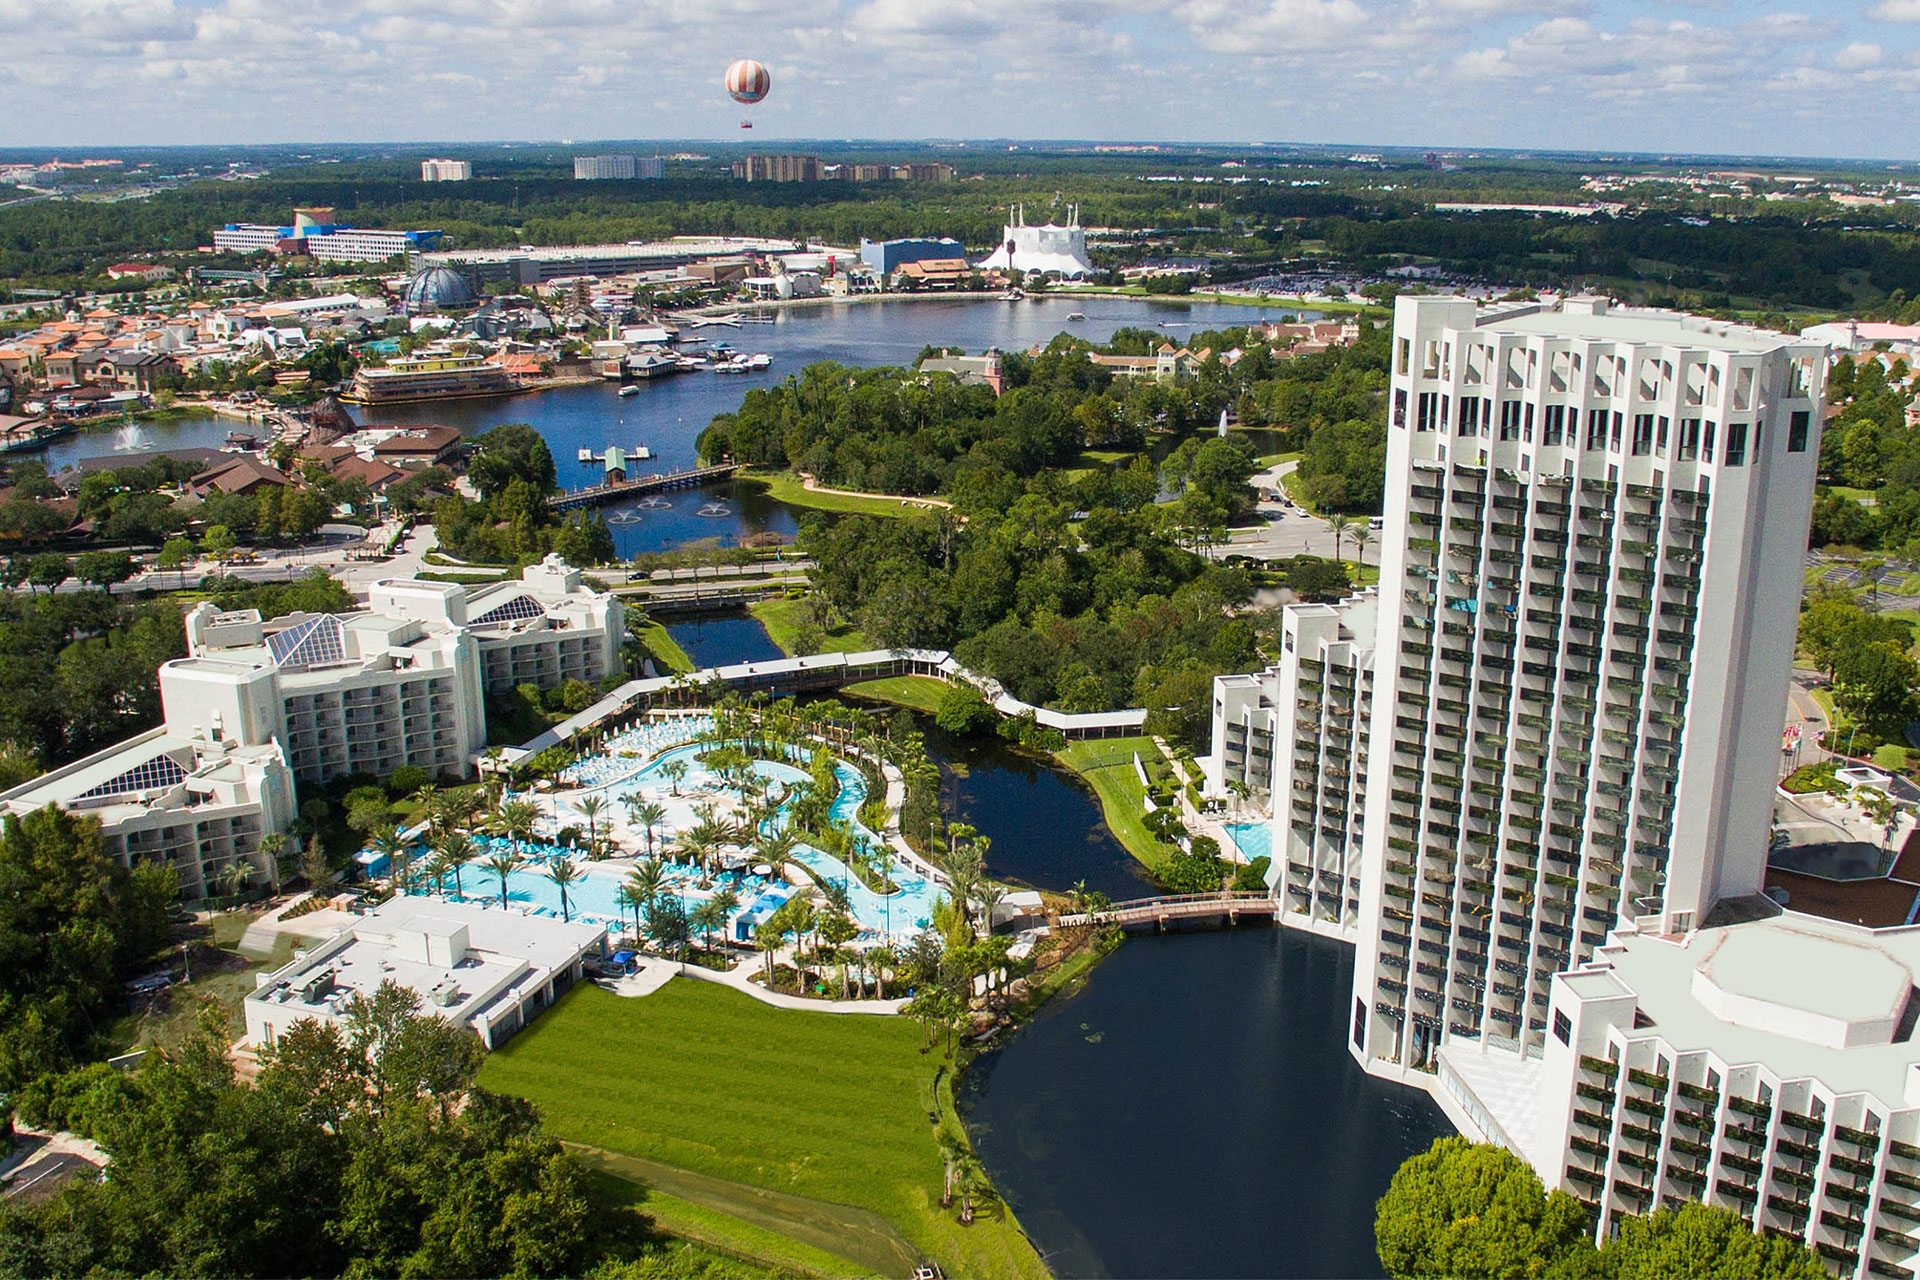 Aerial View of Hilton Orlando Buena Vista Palace; Courtesy of Hilton Orlando Buena Vista Palace